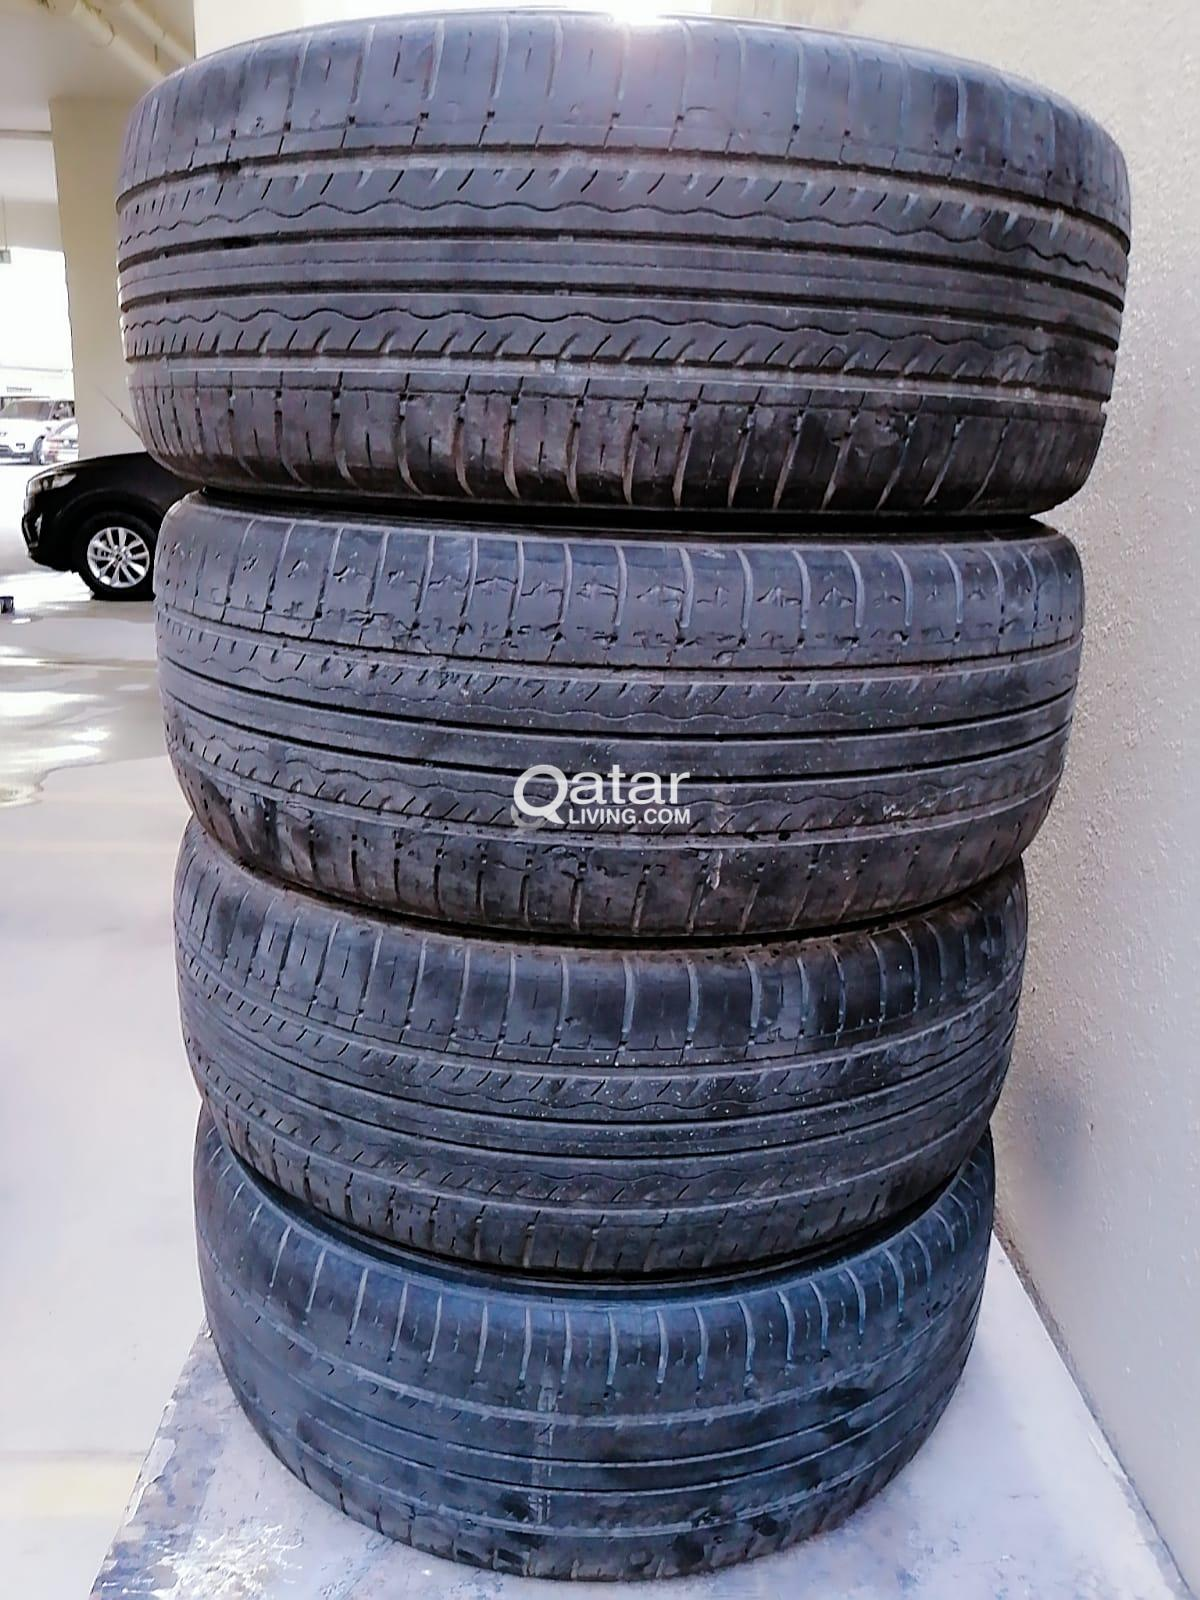 3 TIRES SIZE 215/50R17 FOR SALE